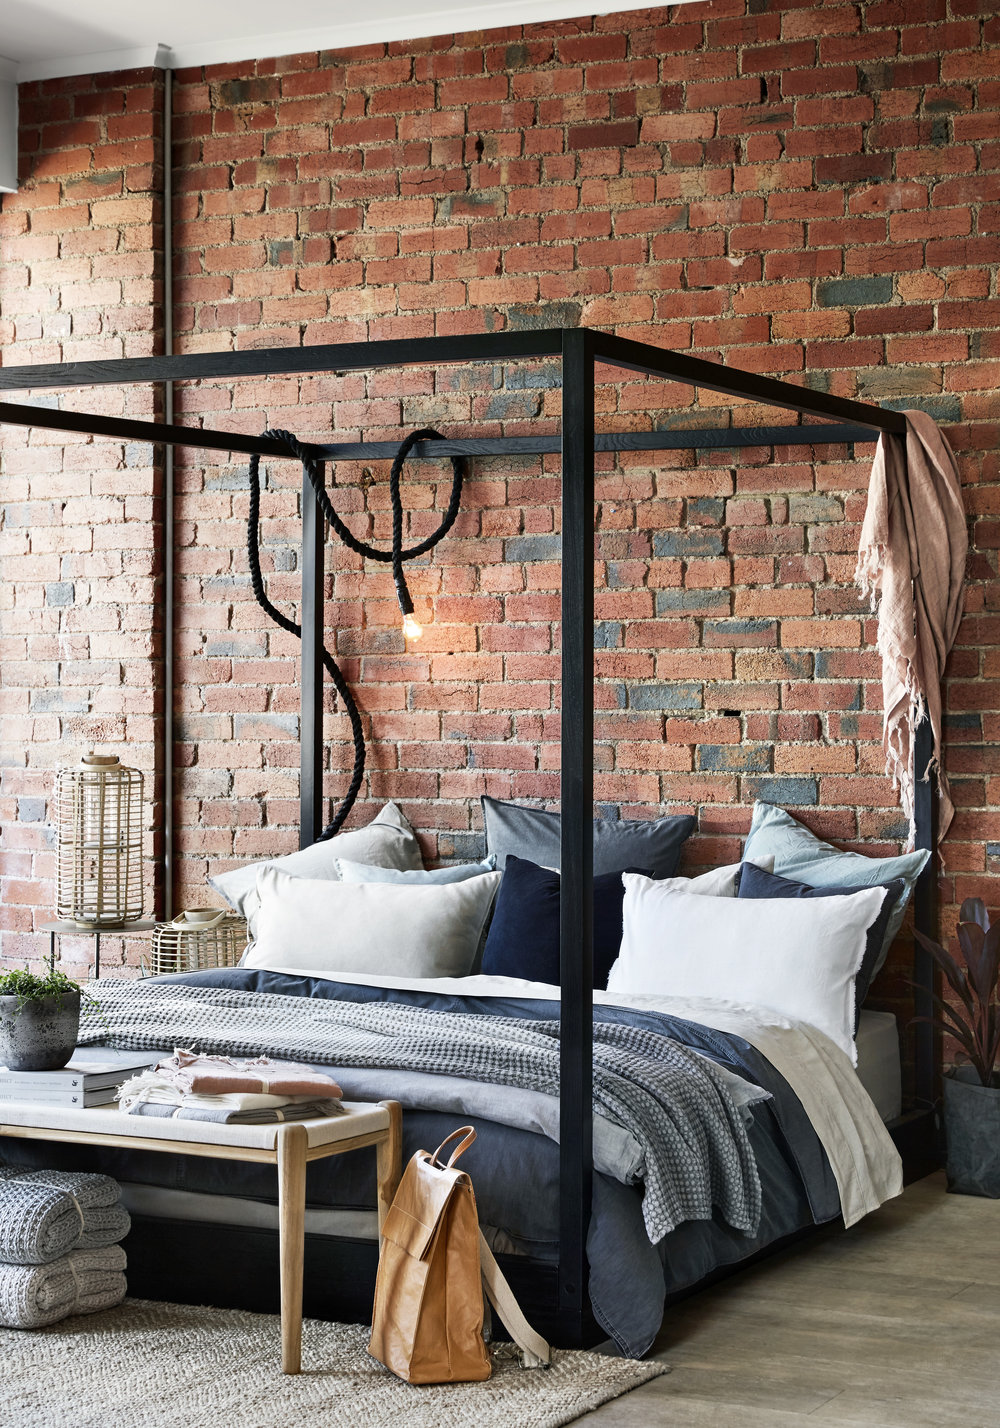 The new  AURA HOME  Malvern store, complete with four poster bed in AURA bedding. Photo - Tess Kelly.